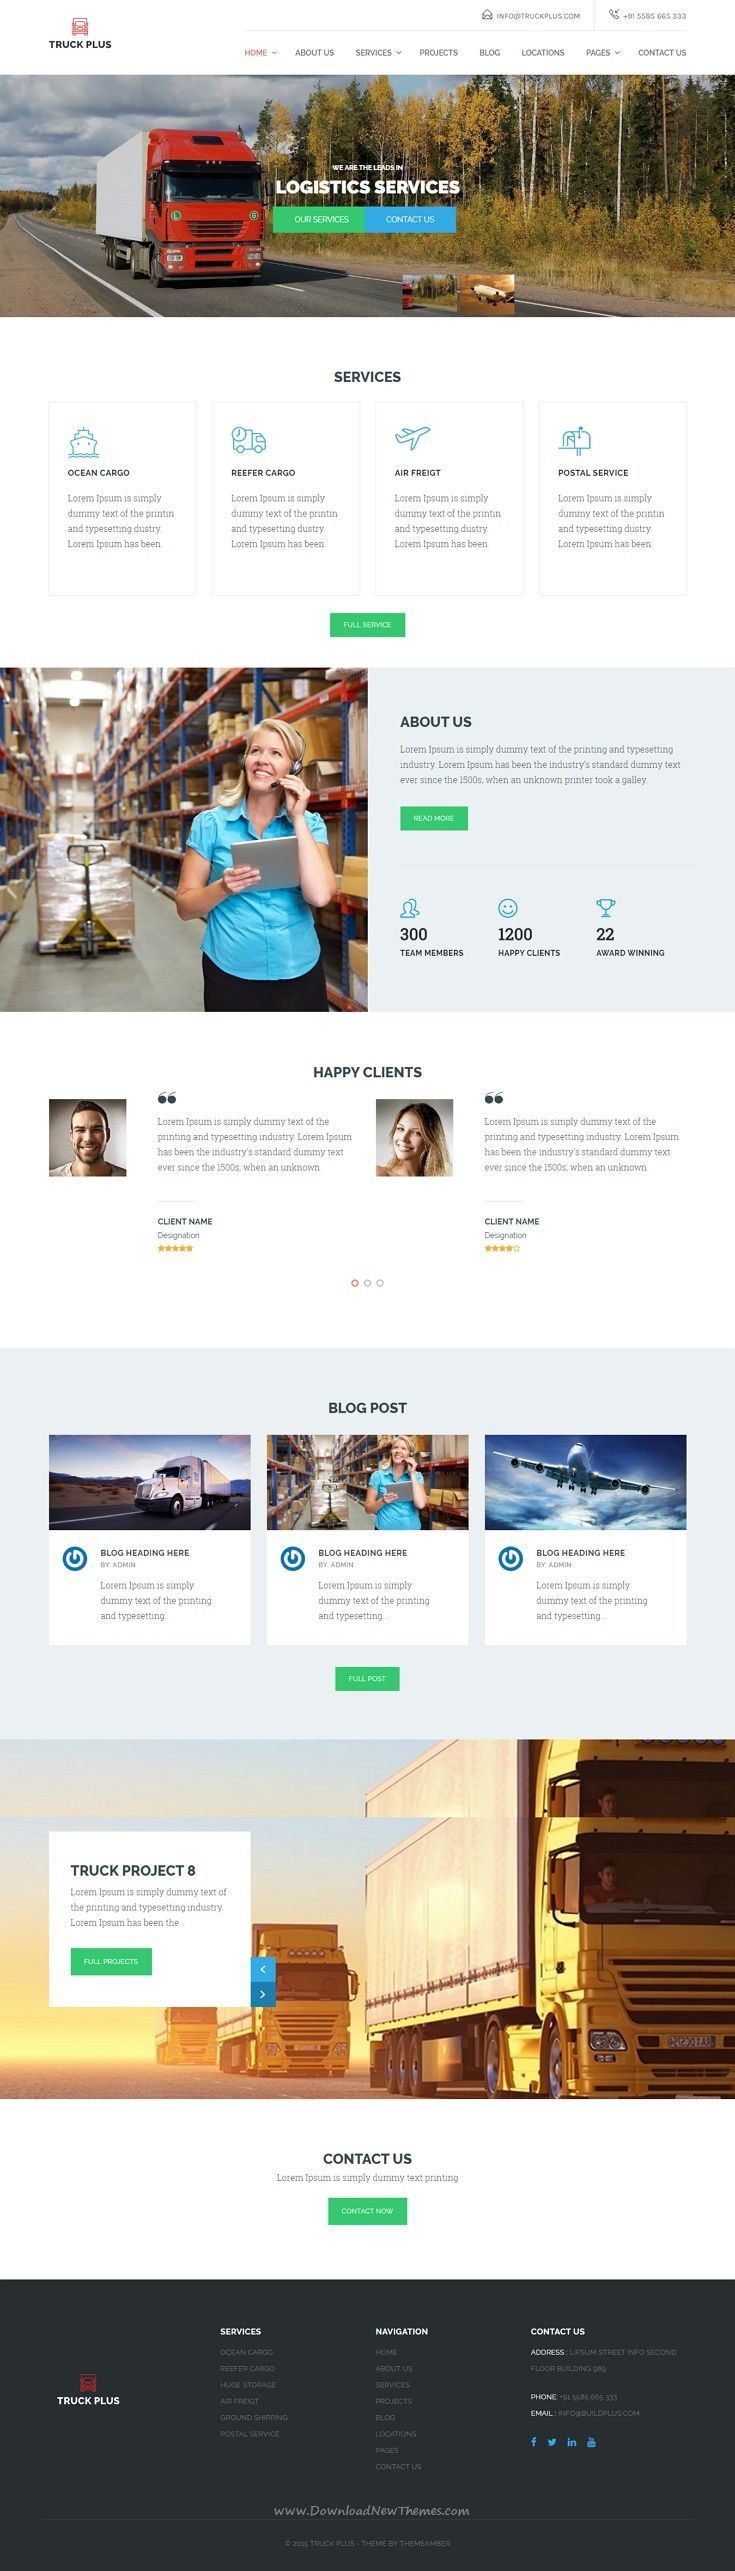 Truck Plus is a customized and responsive standard Wordpress Theme well structured and beautiful WP theme which is specifically designed for #Transportation and #Logistics Service #website